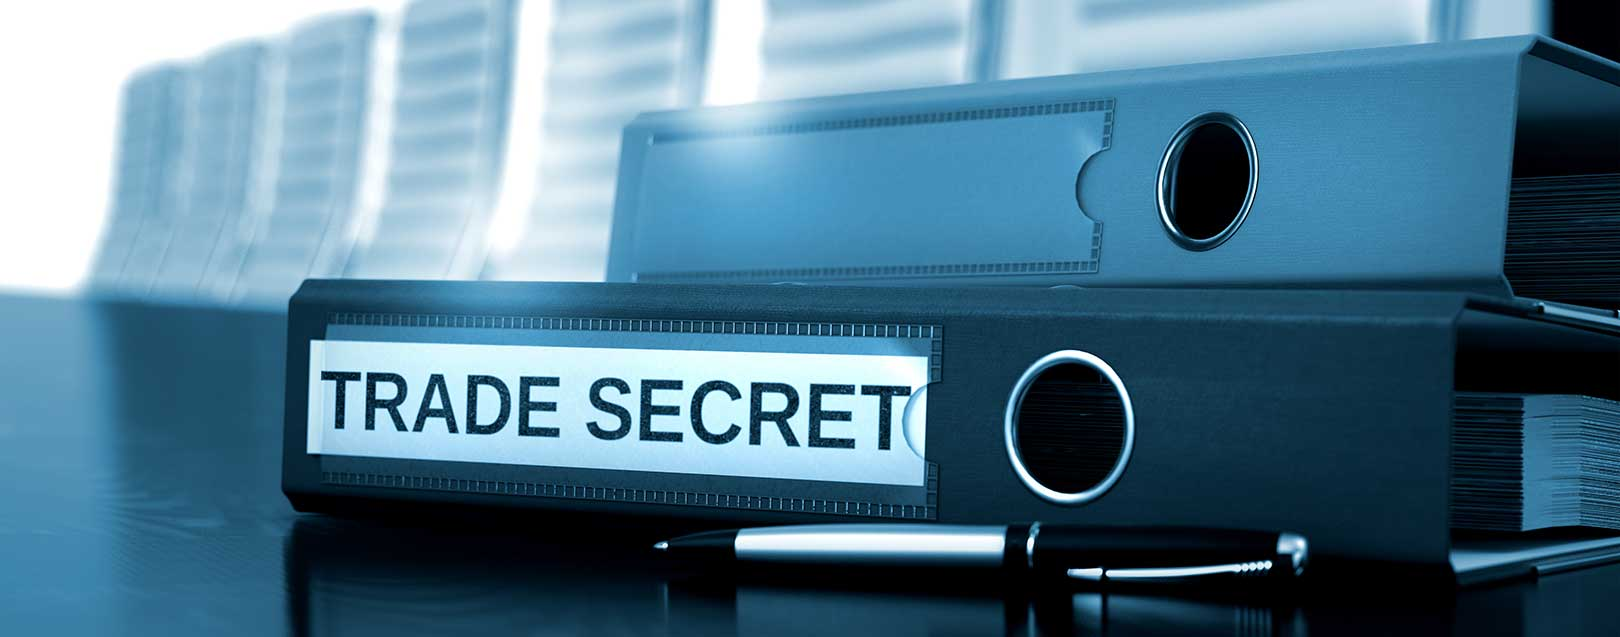 New law places focus on global trade secret theft